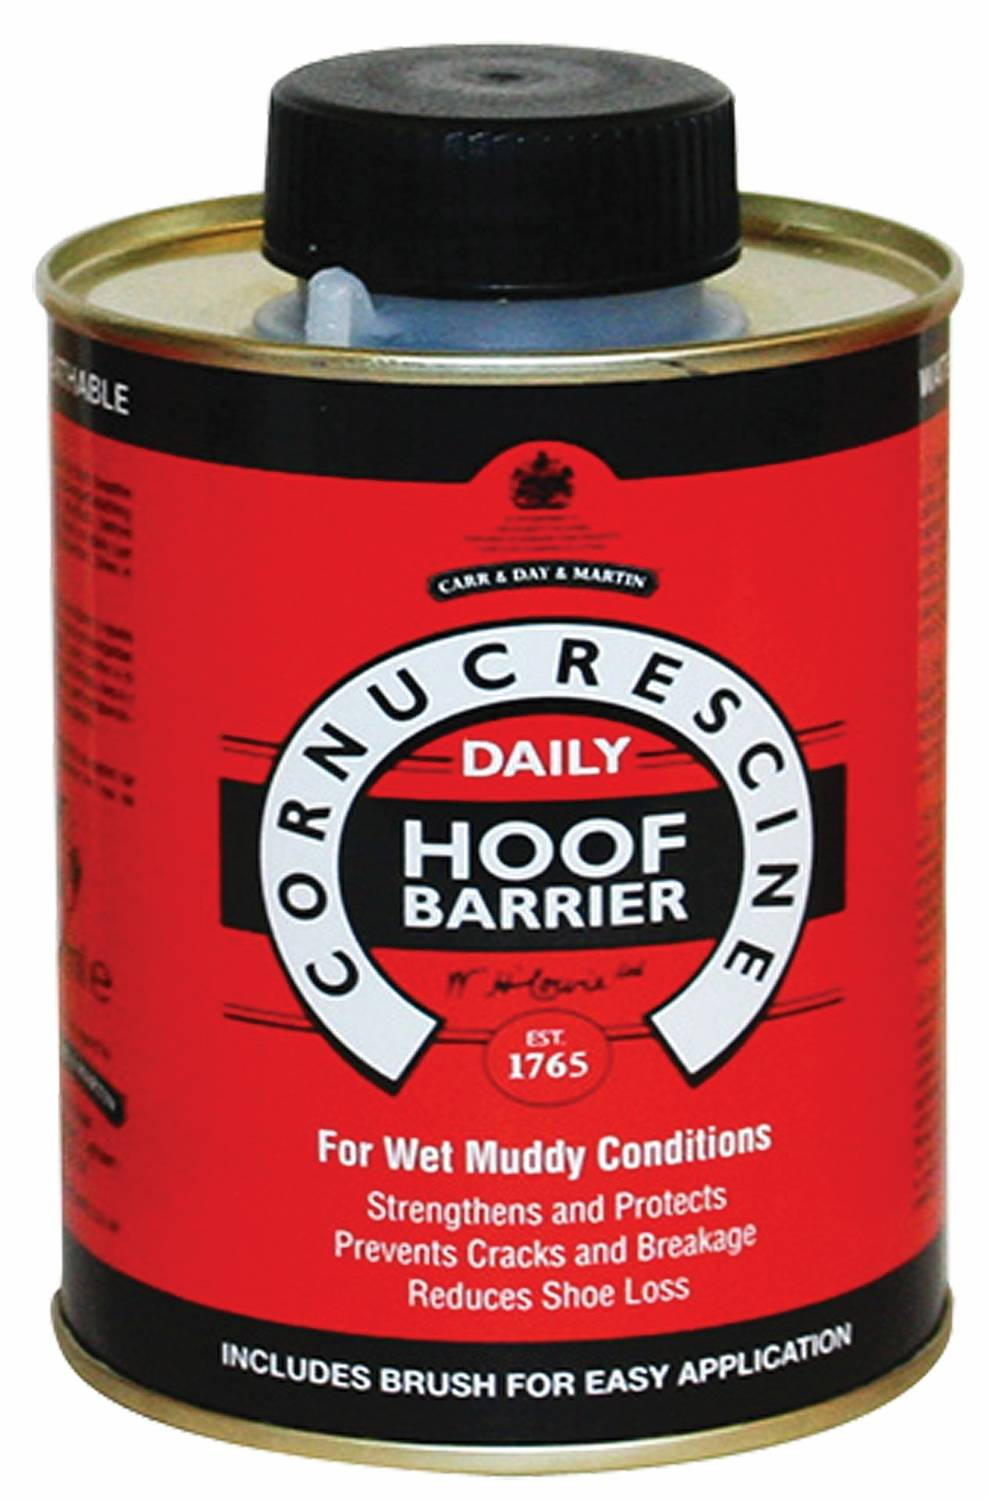 Cornucrescine Daily Hoof Barrier by Carr & Day & Martin